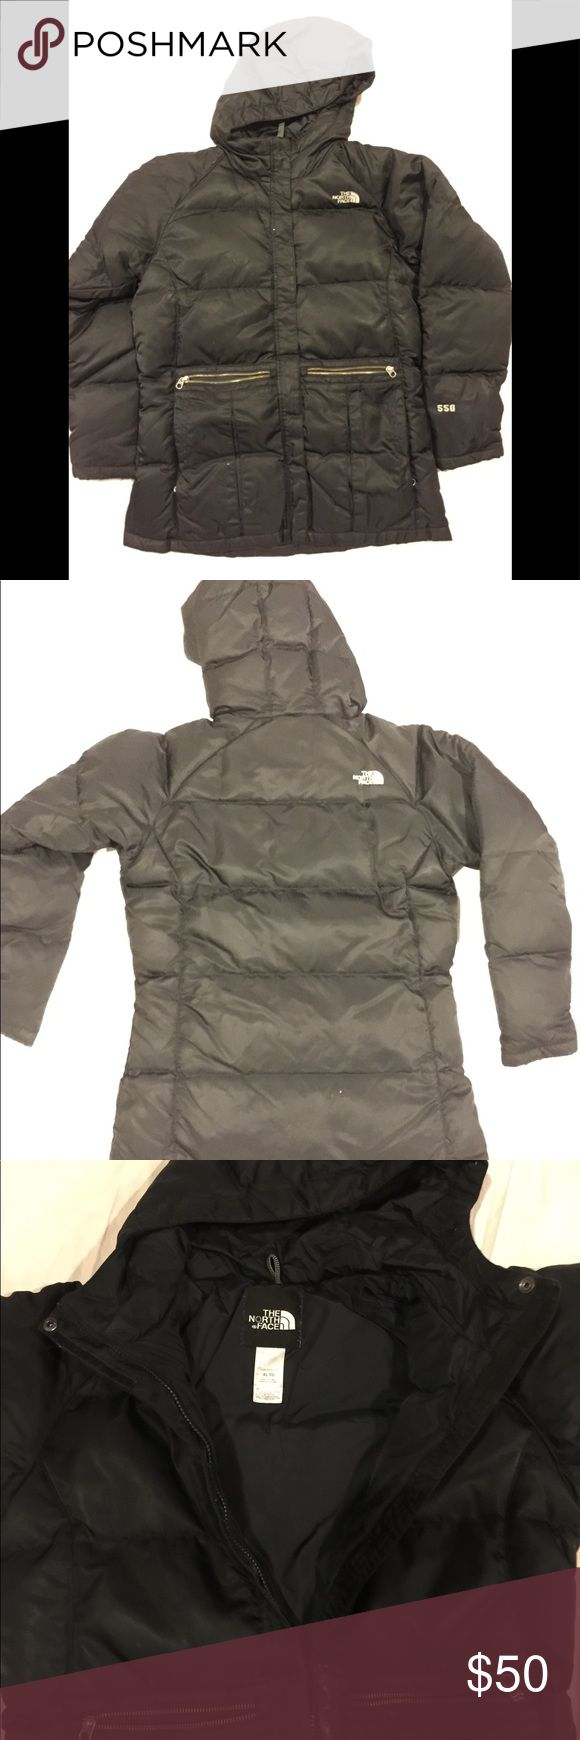 Northface Winter coat Like New Girls Size Small Northface Jacket North Face Jackets & Coats Puffers